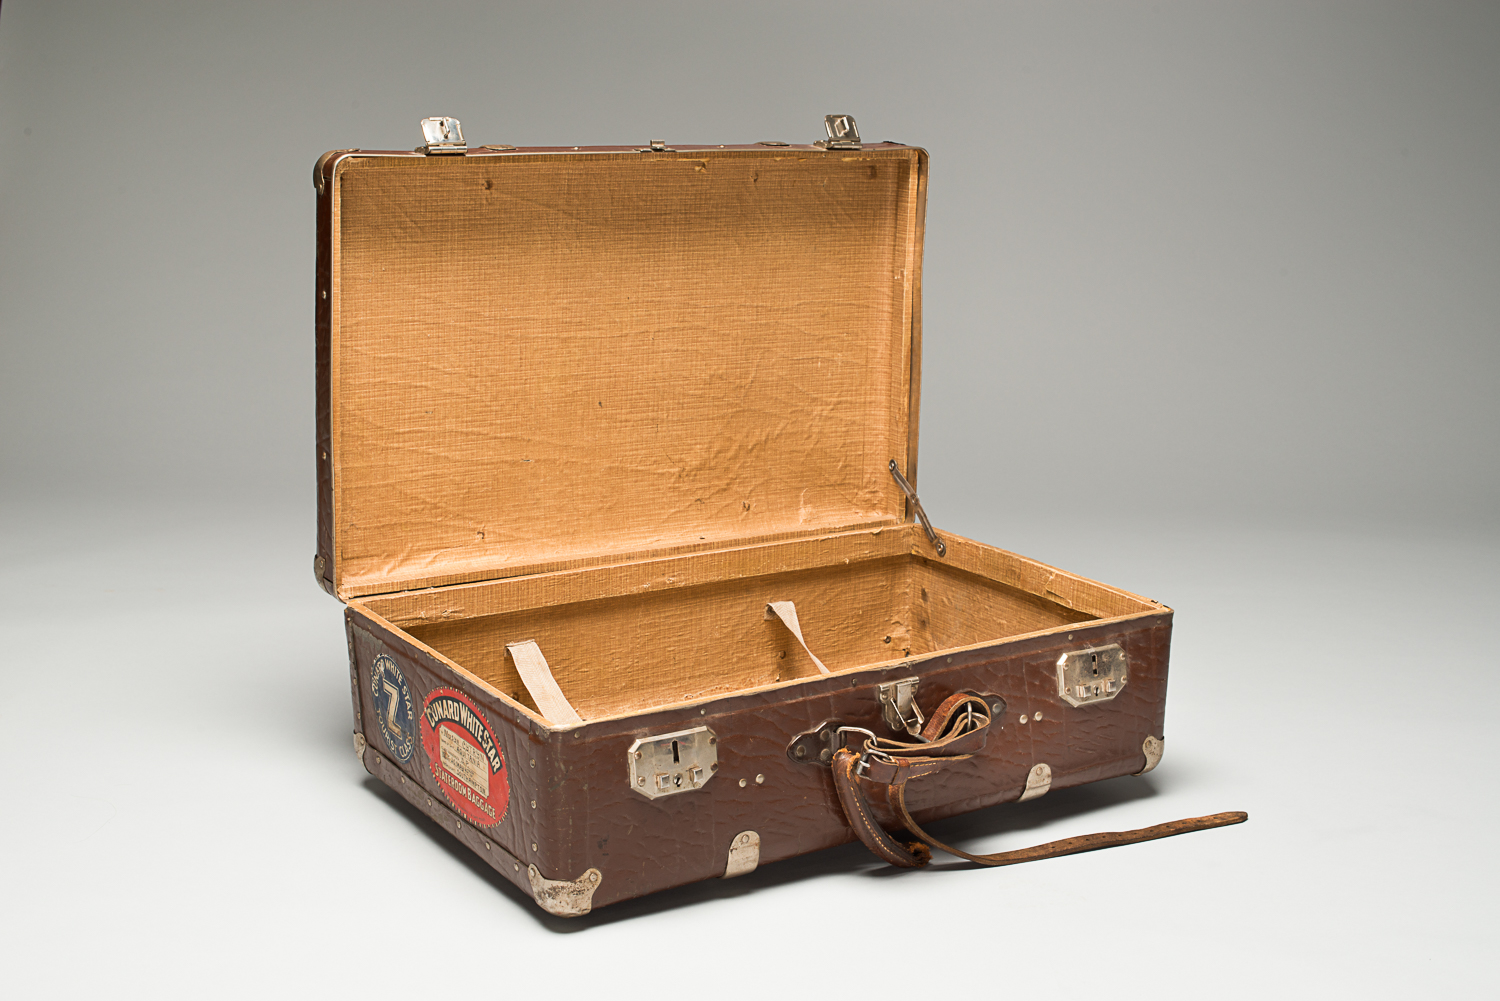 Nathan Cytryn brought this suitcase with him when he immigrated to Canada in 1947. (Photo: Peter Berra)